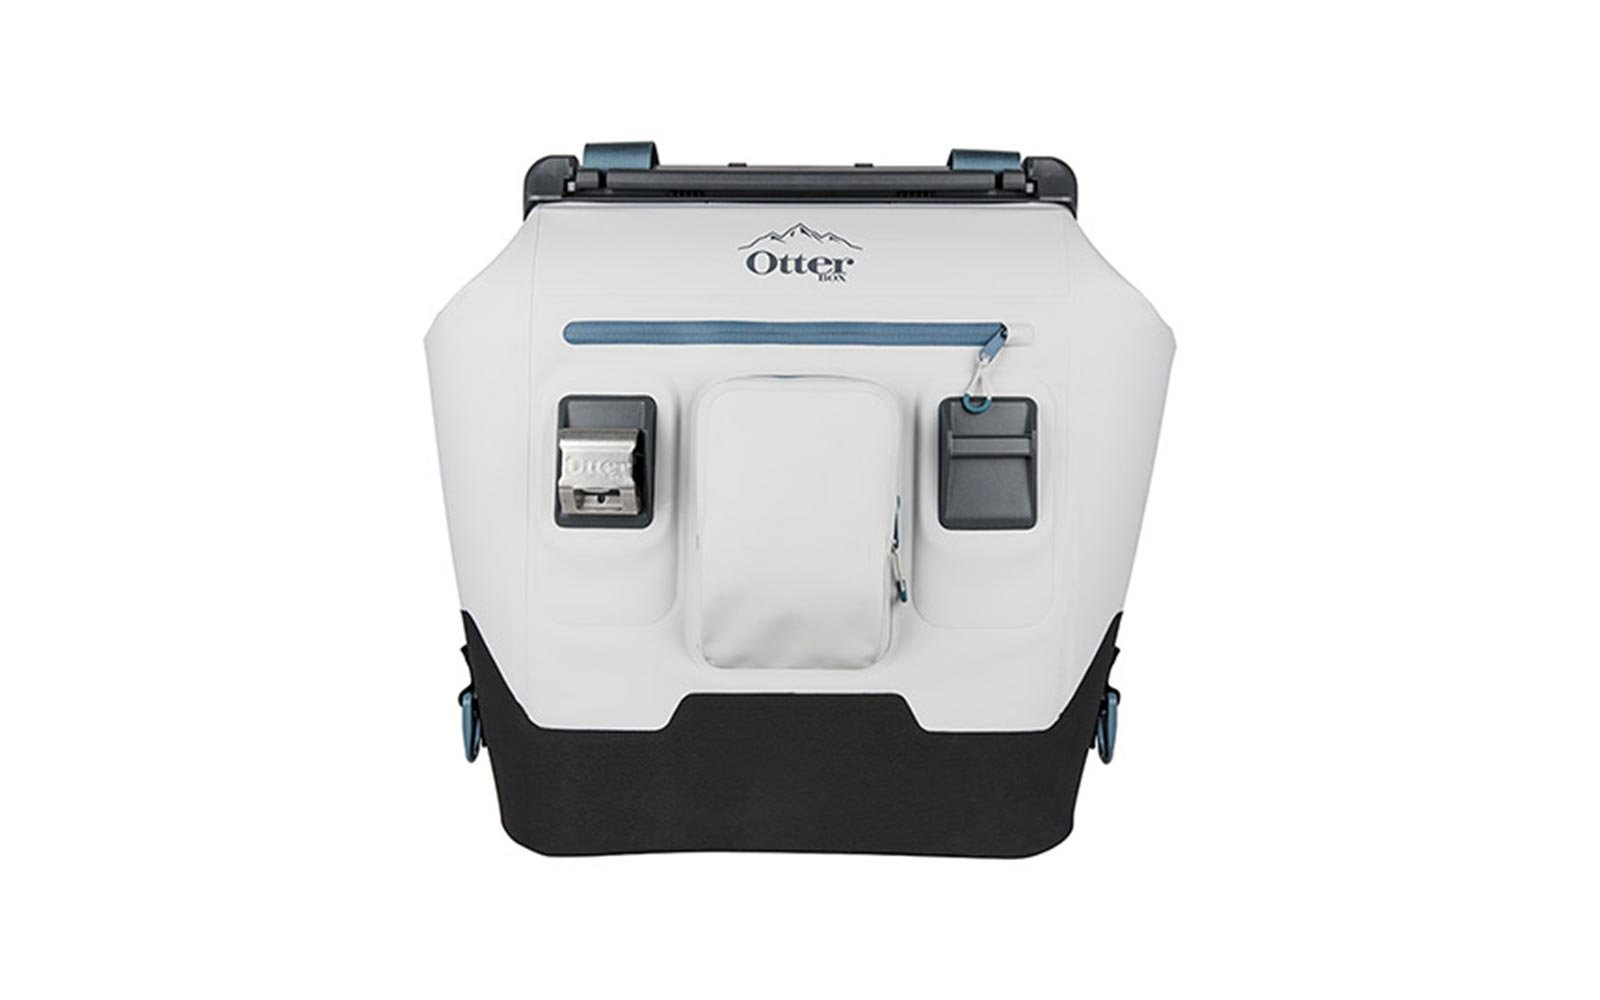 Otterbox cooler backpack